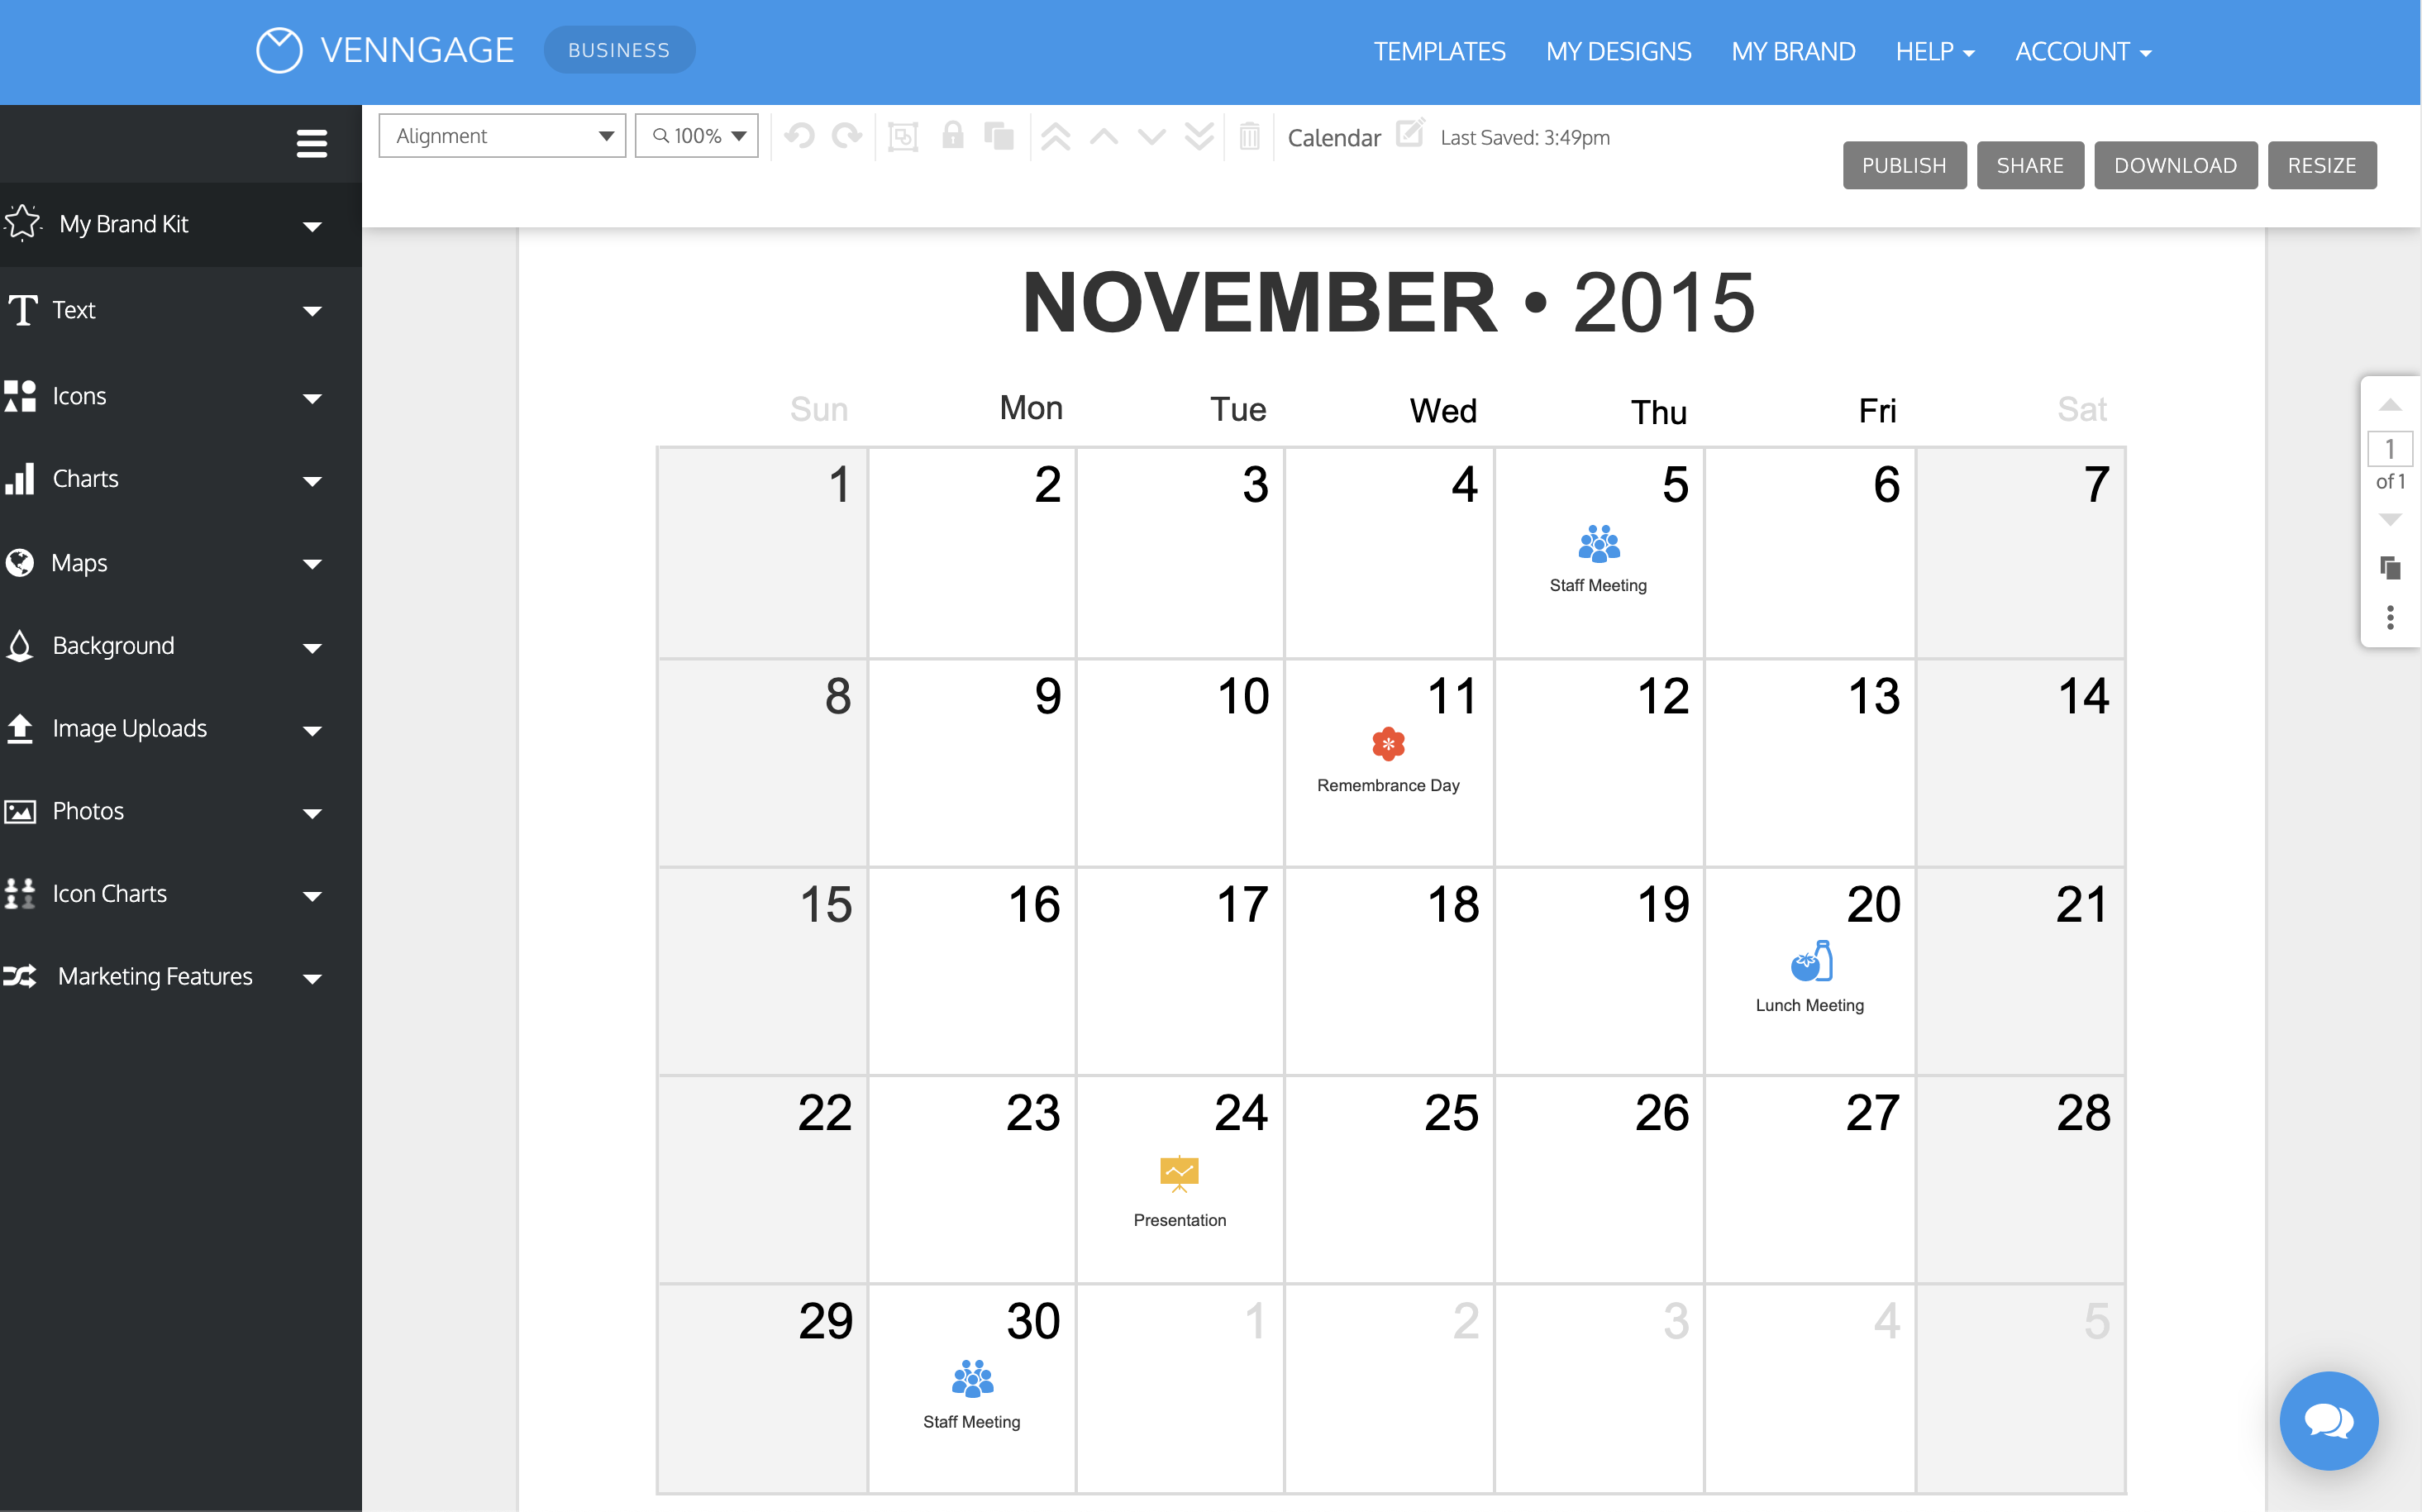 Calendar Template Online from venngage-wordpress.s3.amazonaws.com